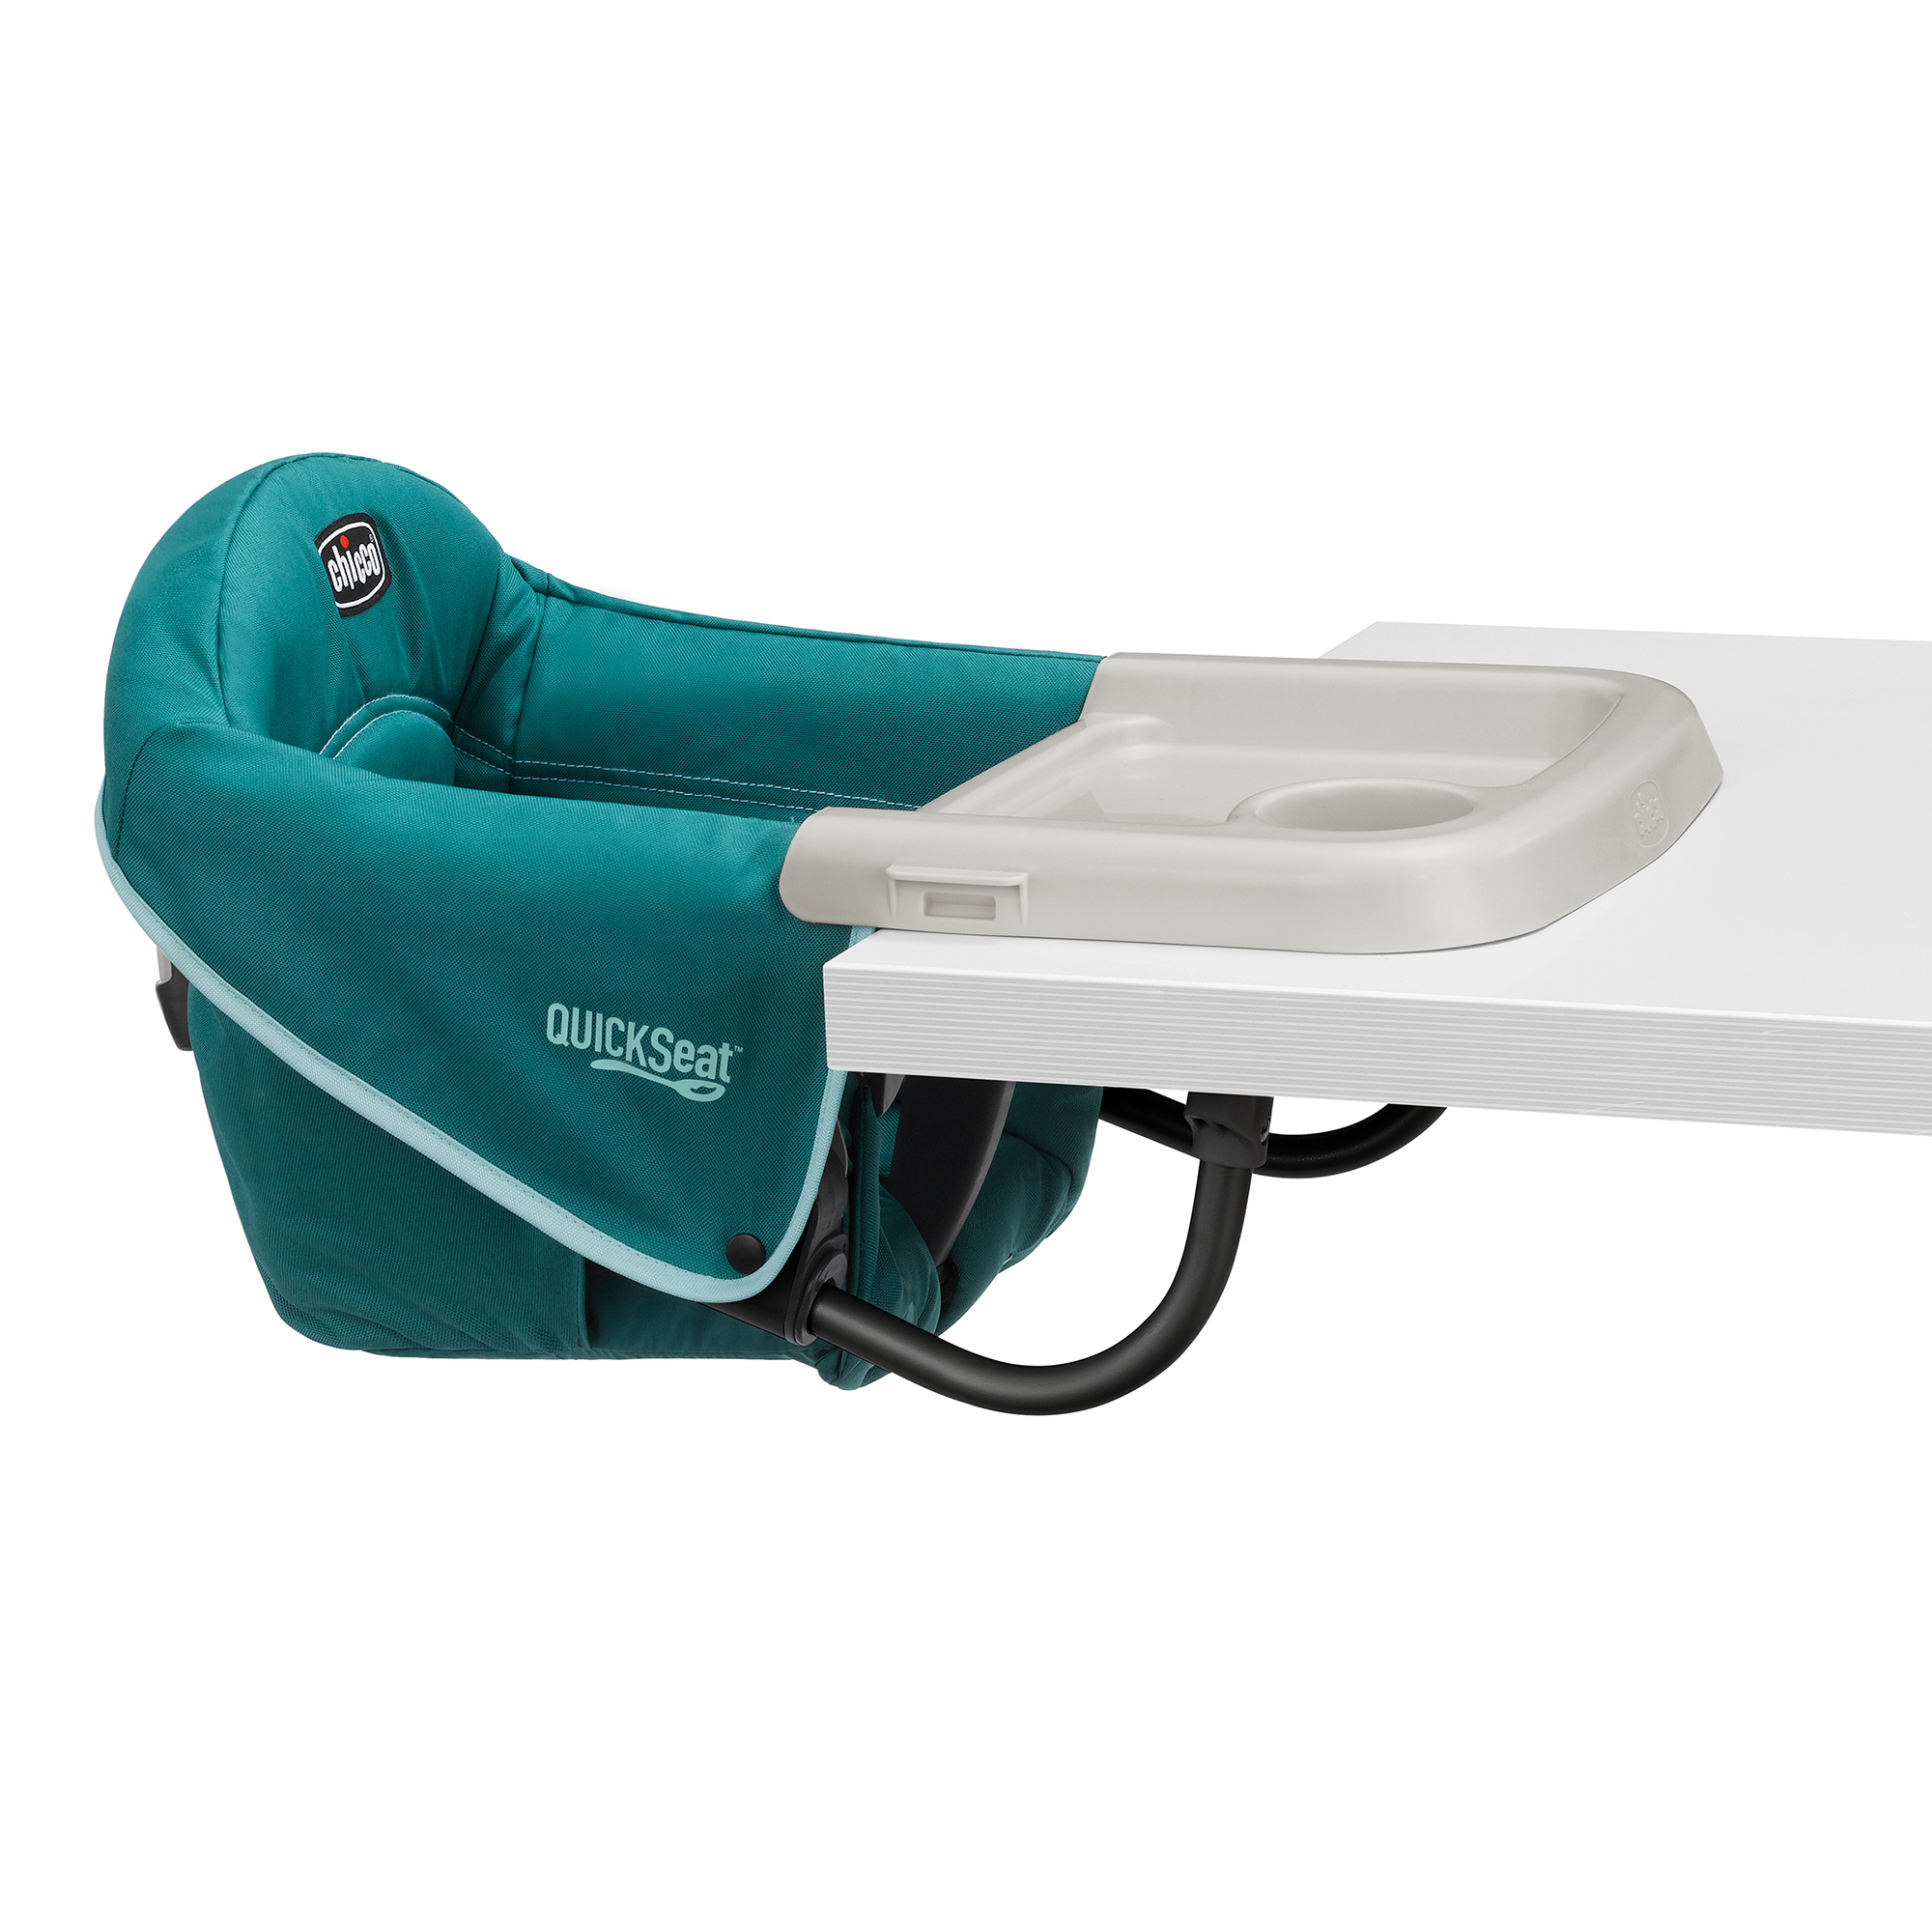 Chicco QuickSeat Hook-On Chair, Isle